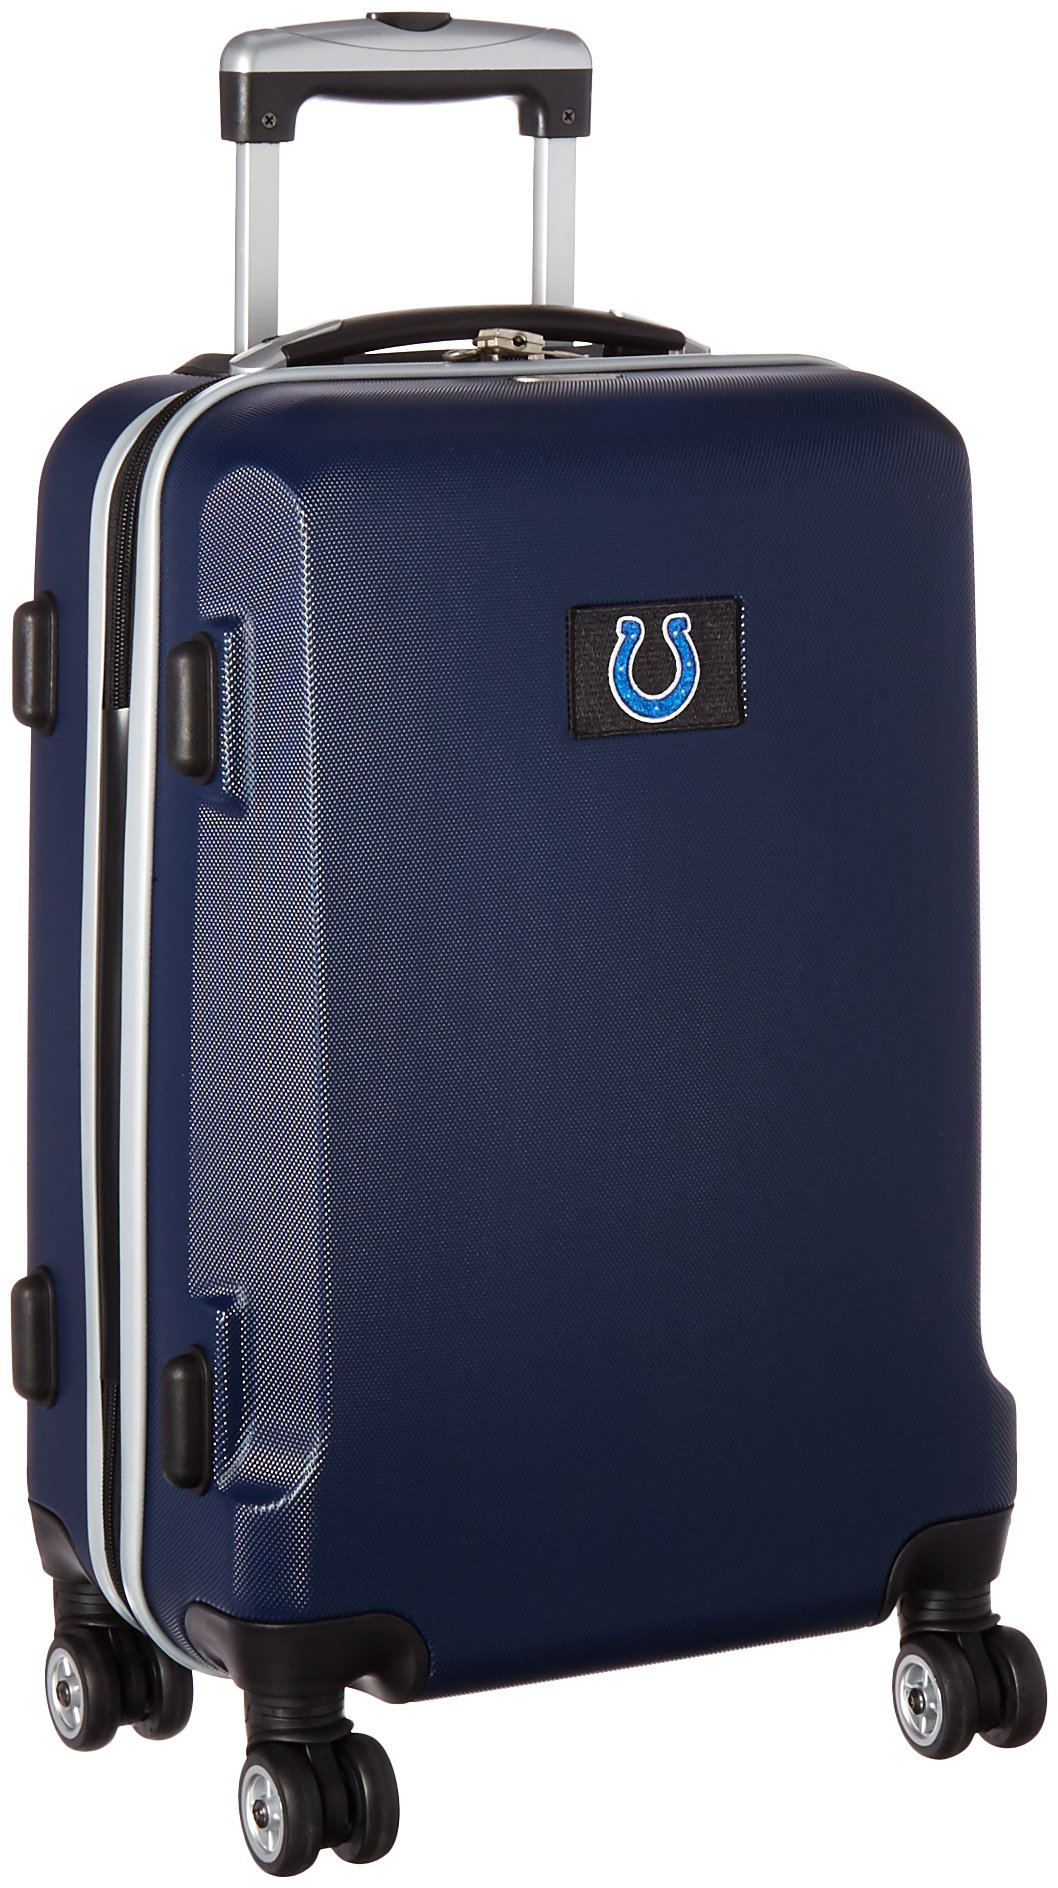 Denco NFL Indianapolis Colts Carry-On Hardcase Luggage Spinner, Navy by Denco (Image #2)